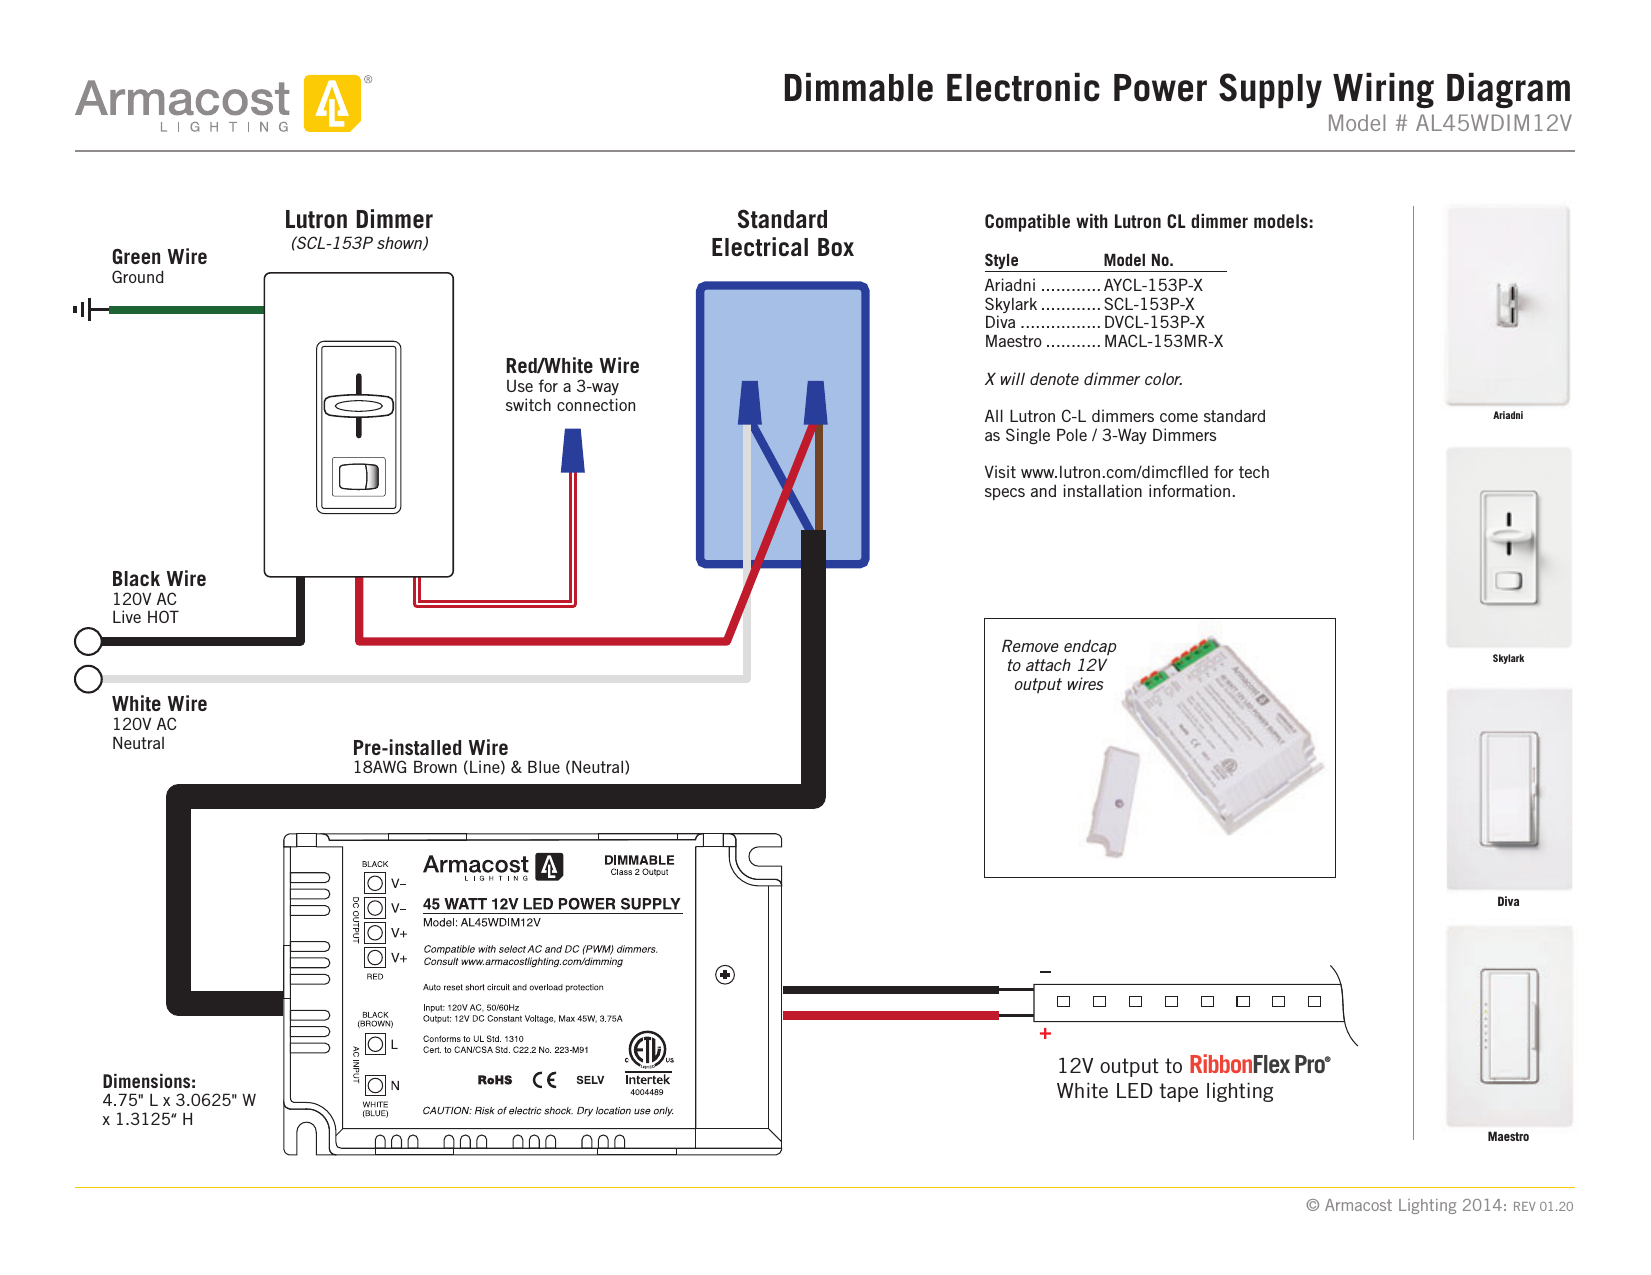 lutron led dimmer wiring diagram Download-lutron diva cl wiring diagram Collection lutron skylark dimmer wiring diagram Unique Lutron Dimmer Switch 17-o